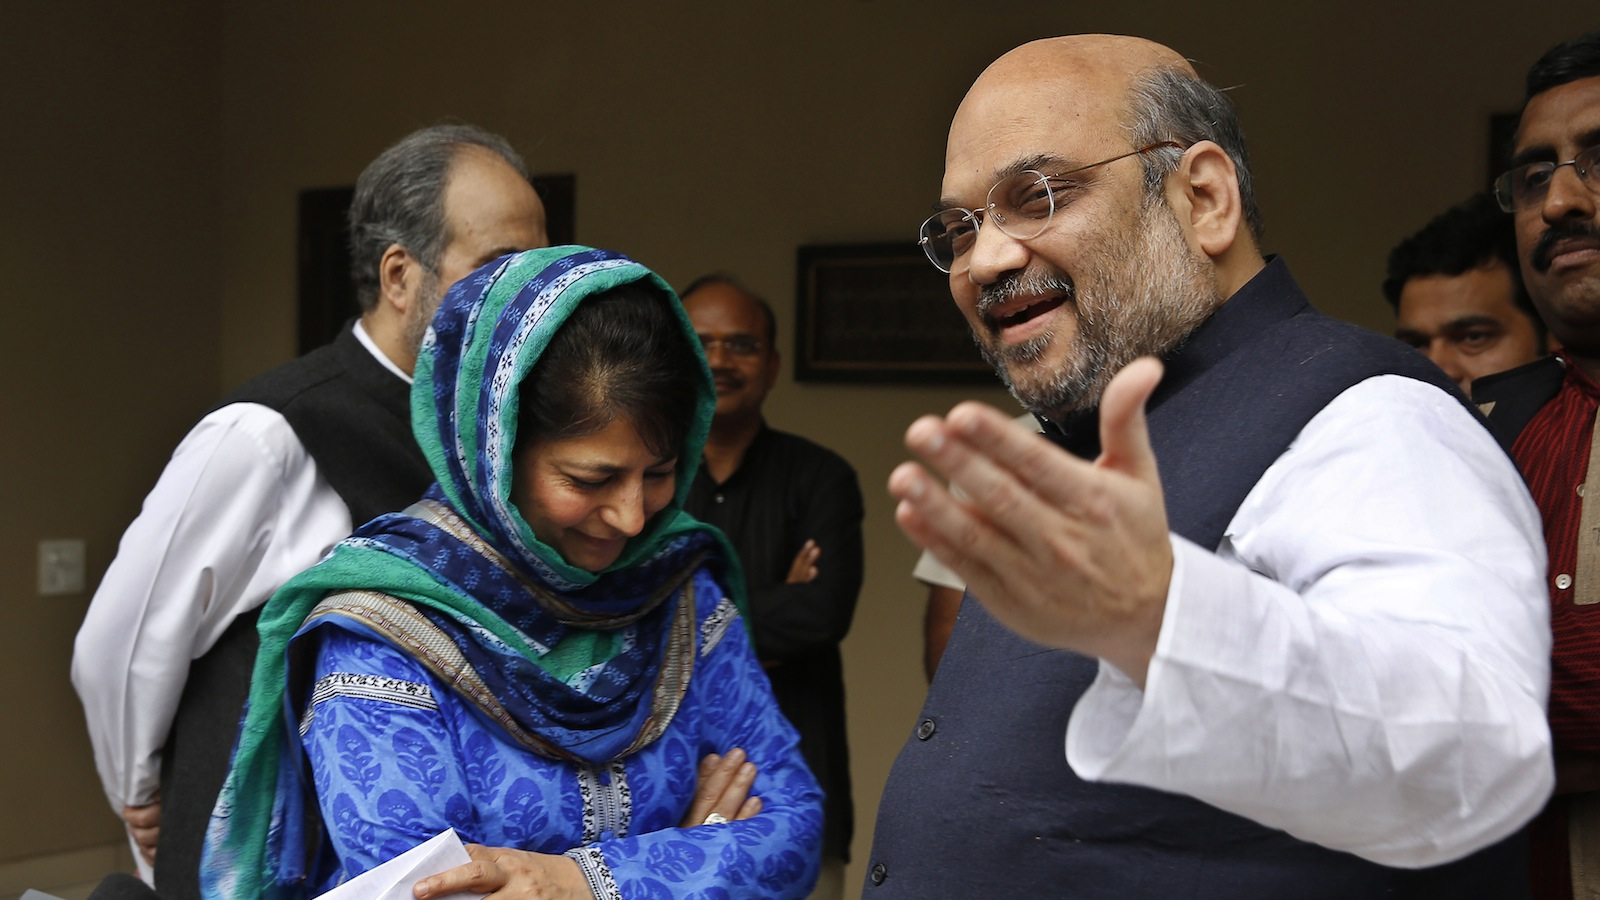 India's ruling Bharatiya Janata Party (BJP) president Amit Shah, right, gestures to the media after a meeting with Kashmir's regional Peoples' Democratic Party (PDP) leader Mehbooba Mufti, left in blue, in New Delhi, India, Tuesday, Feb. 24, 2015. The BJP and the PDP Tuesday finalized an agreement to form a coalition government in Kashmir, the first time the Hindu nationalist party will share a leadership position in the predominantly Muslim region. (AP Photo / Manish Swarup)